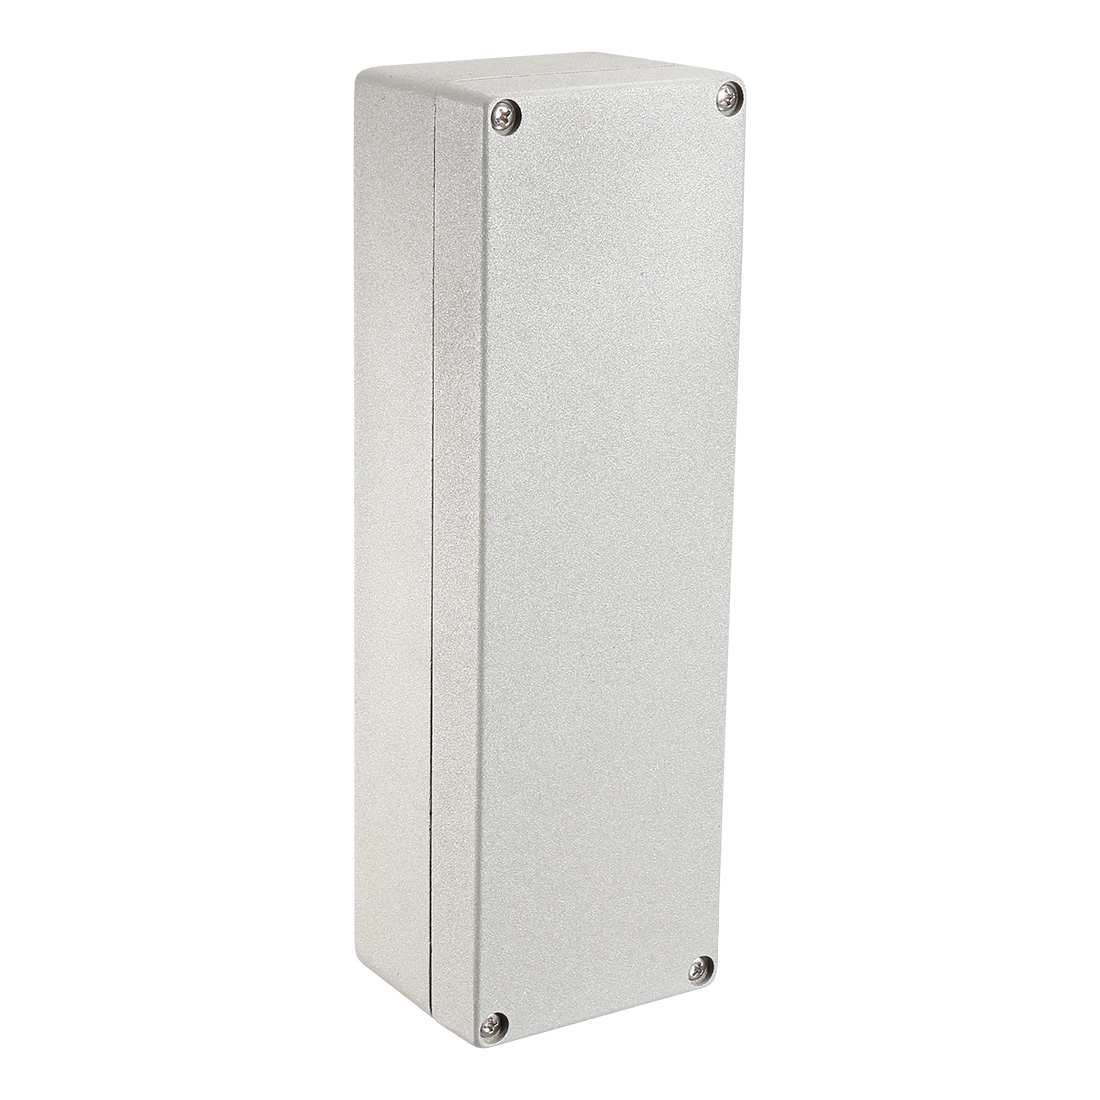 "9.8""x3.2""x2.5""(250mmx80mmx64mm) Aluminum Junction Box Universal Electric Project Enclosure"